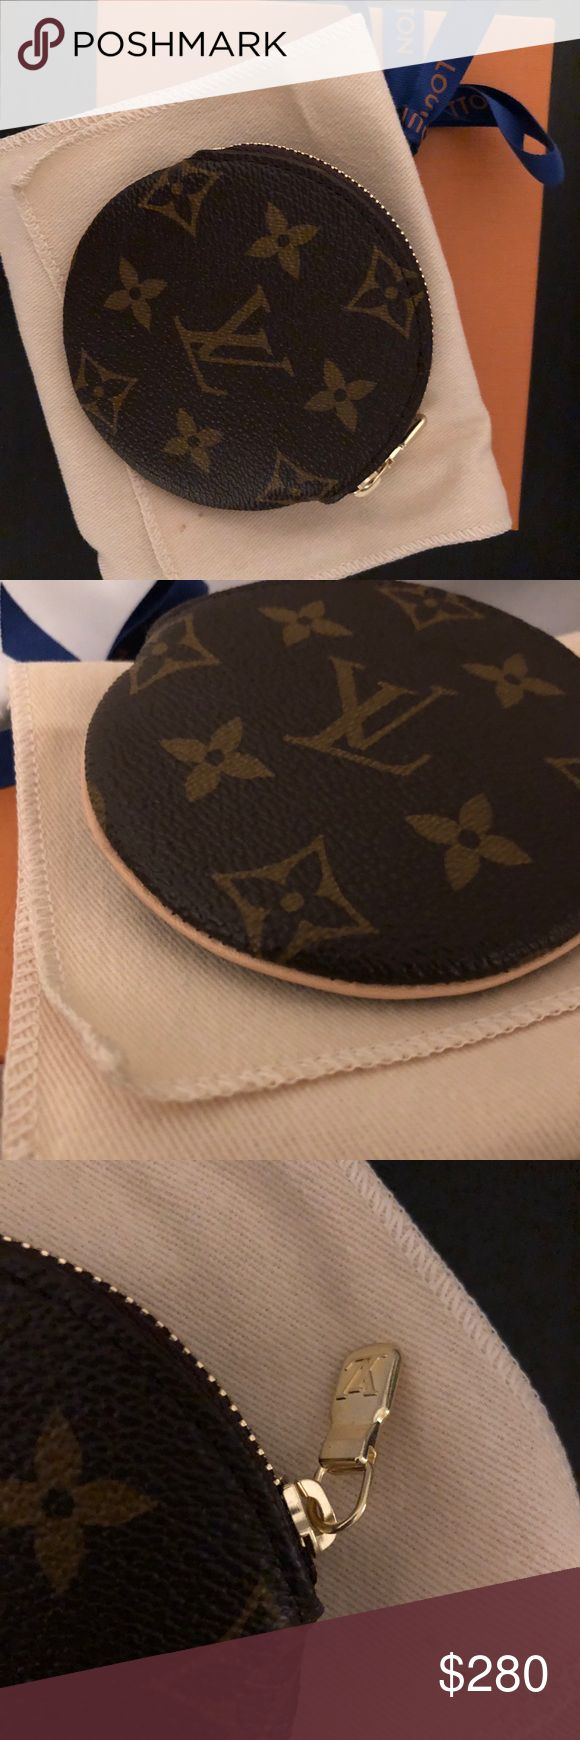 Louis Vuitton Coin Purse New in box. Never used. Dust bag included. Price is firm. Louis Vuitton Bags Wallets